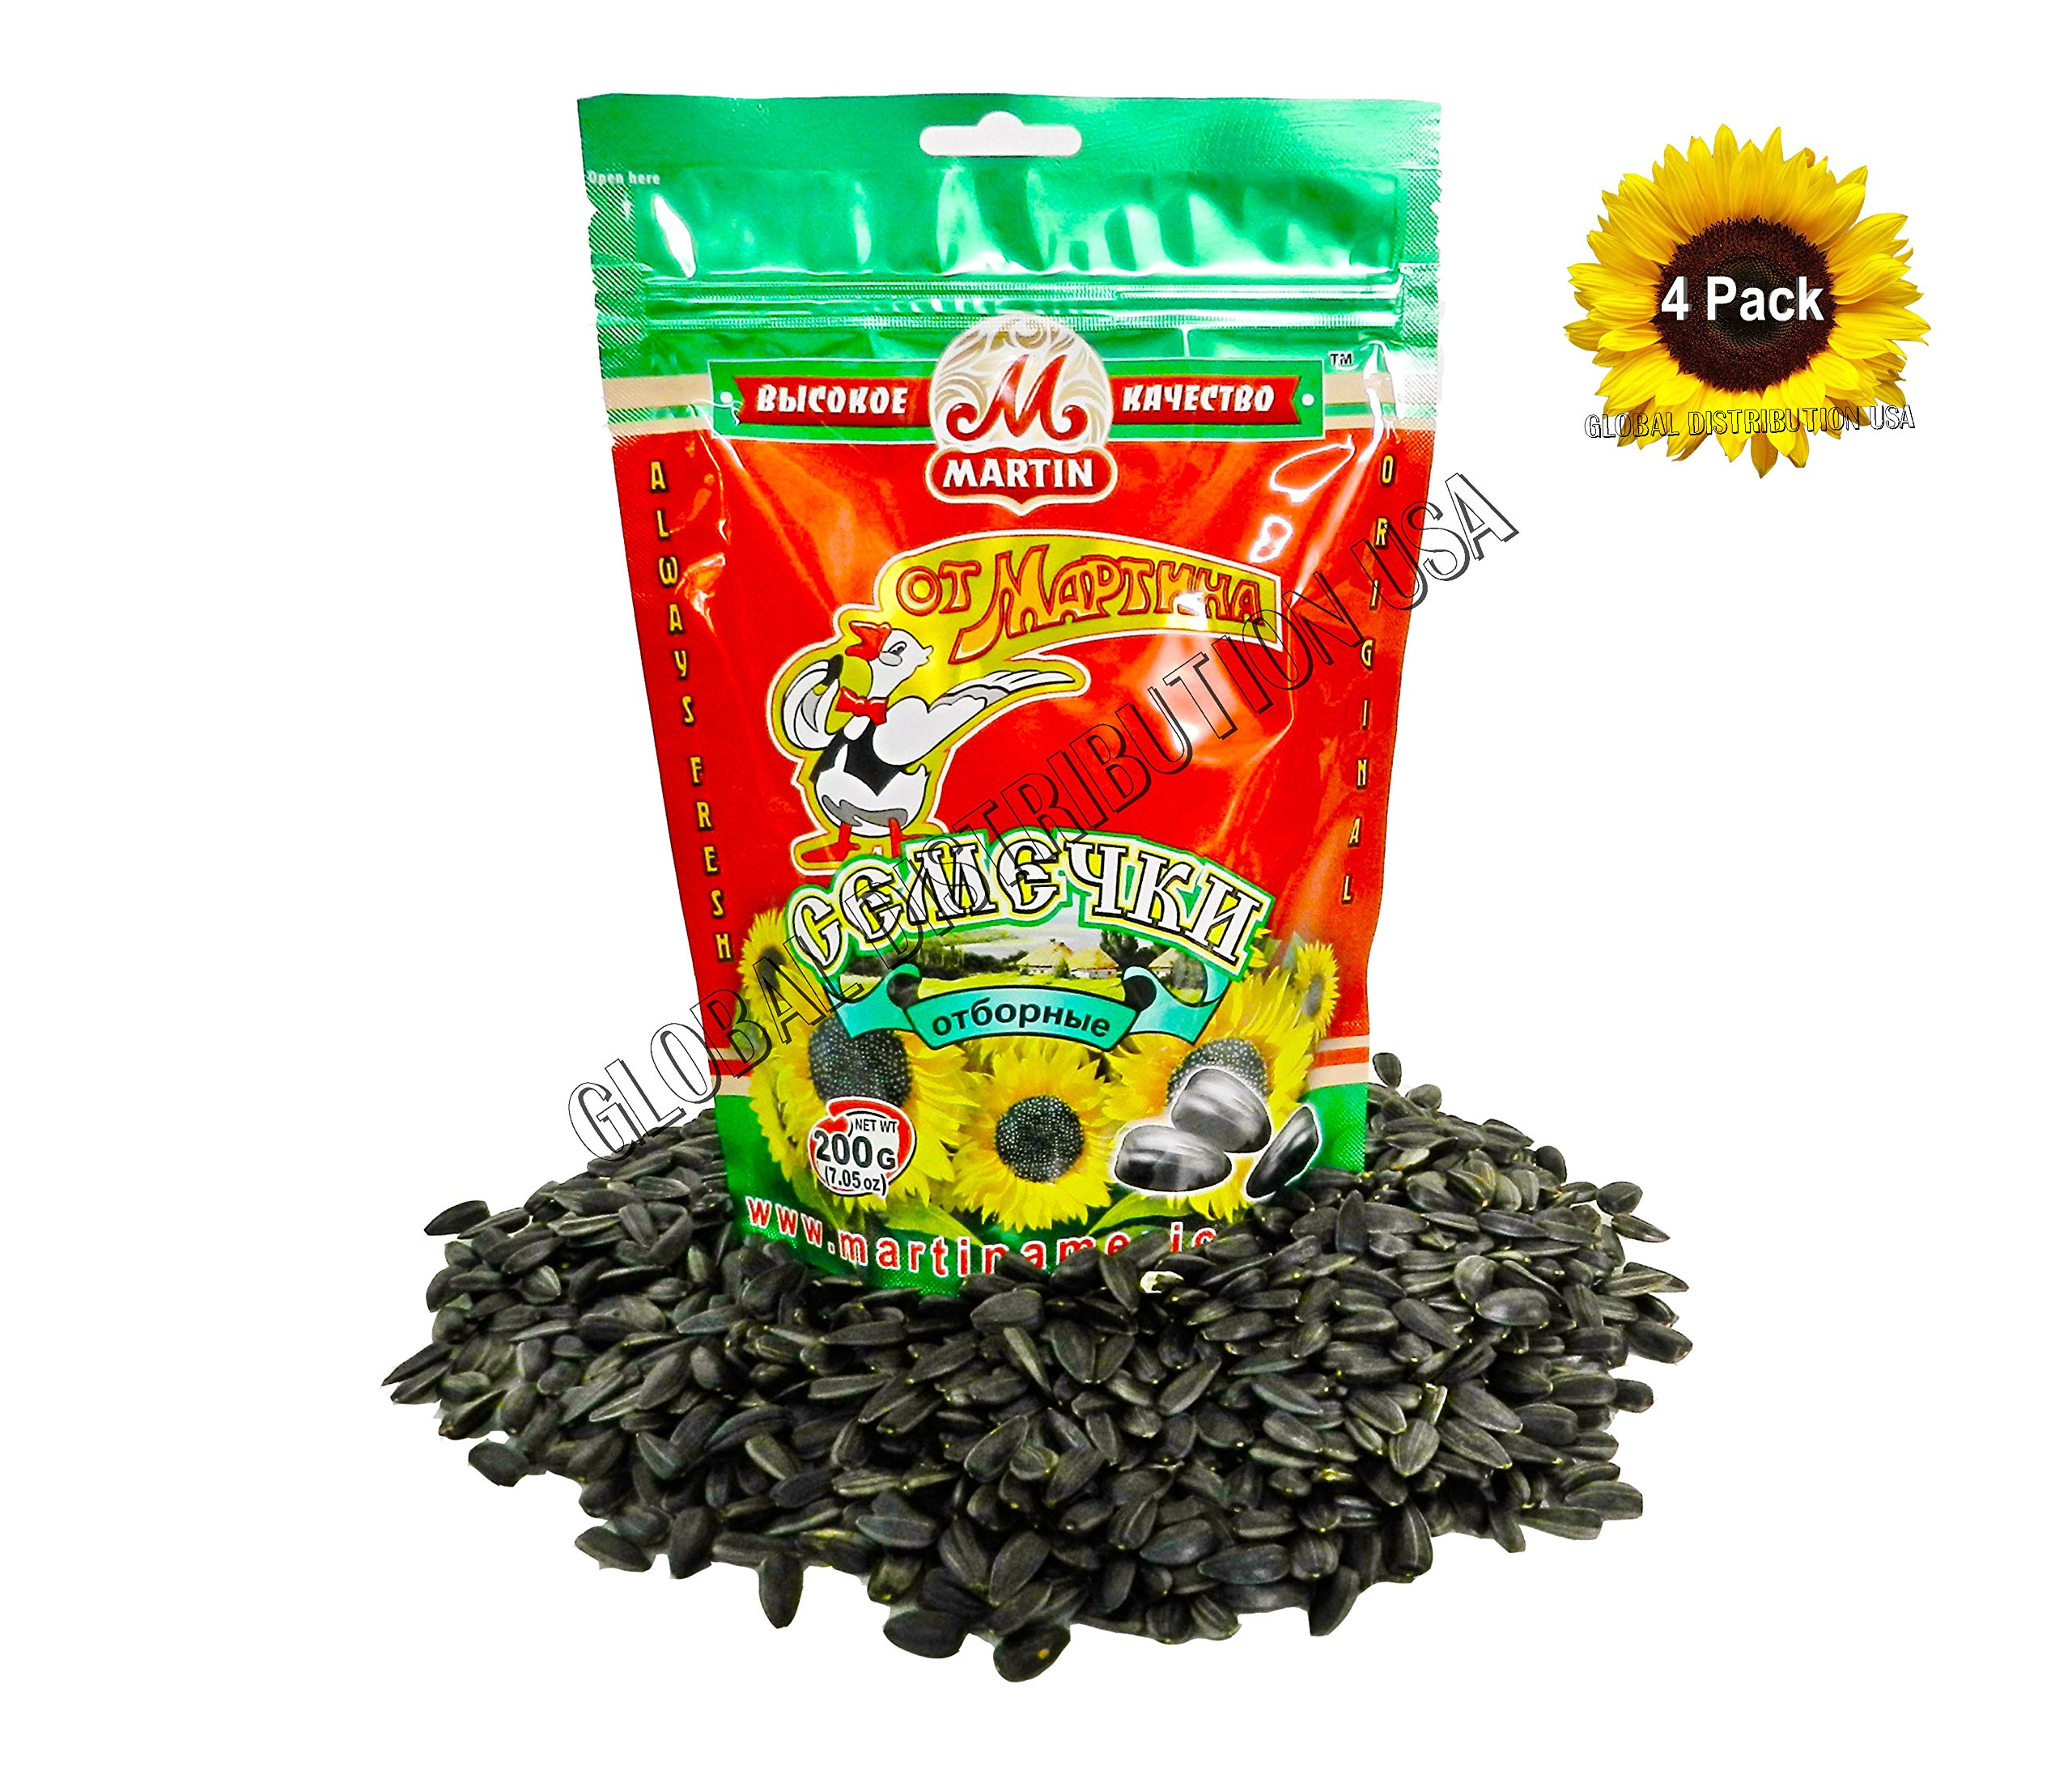 Premium Roasted Sunflower Seeds by Mr.Martin (Ot Martina) Unsalted Non-GMO 200G Pack of 4